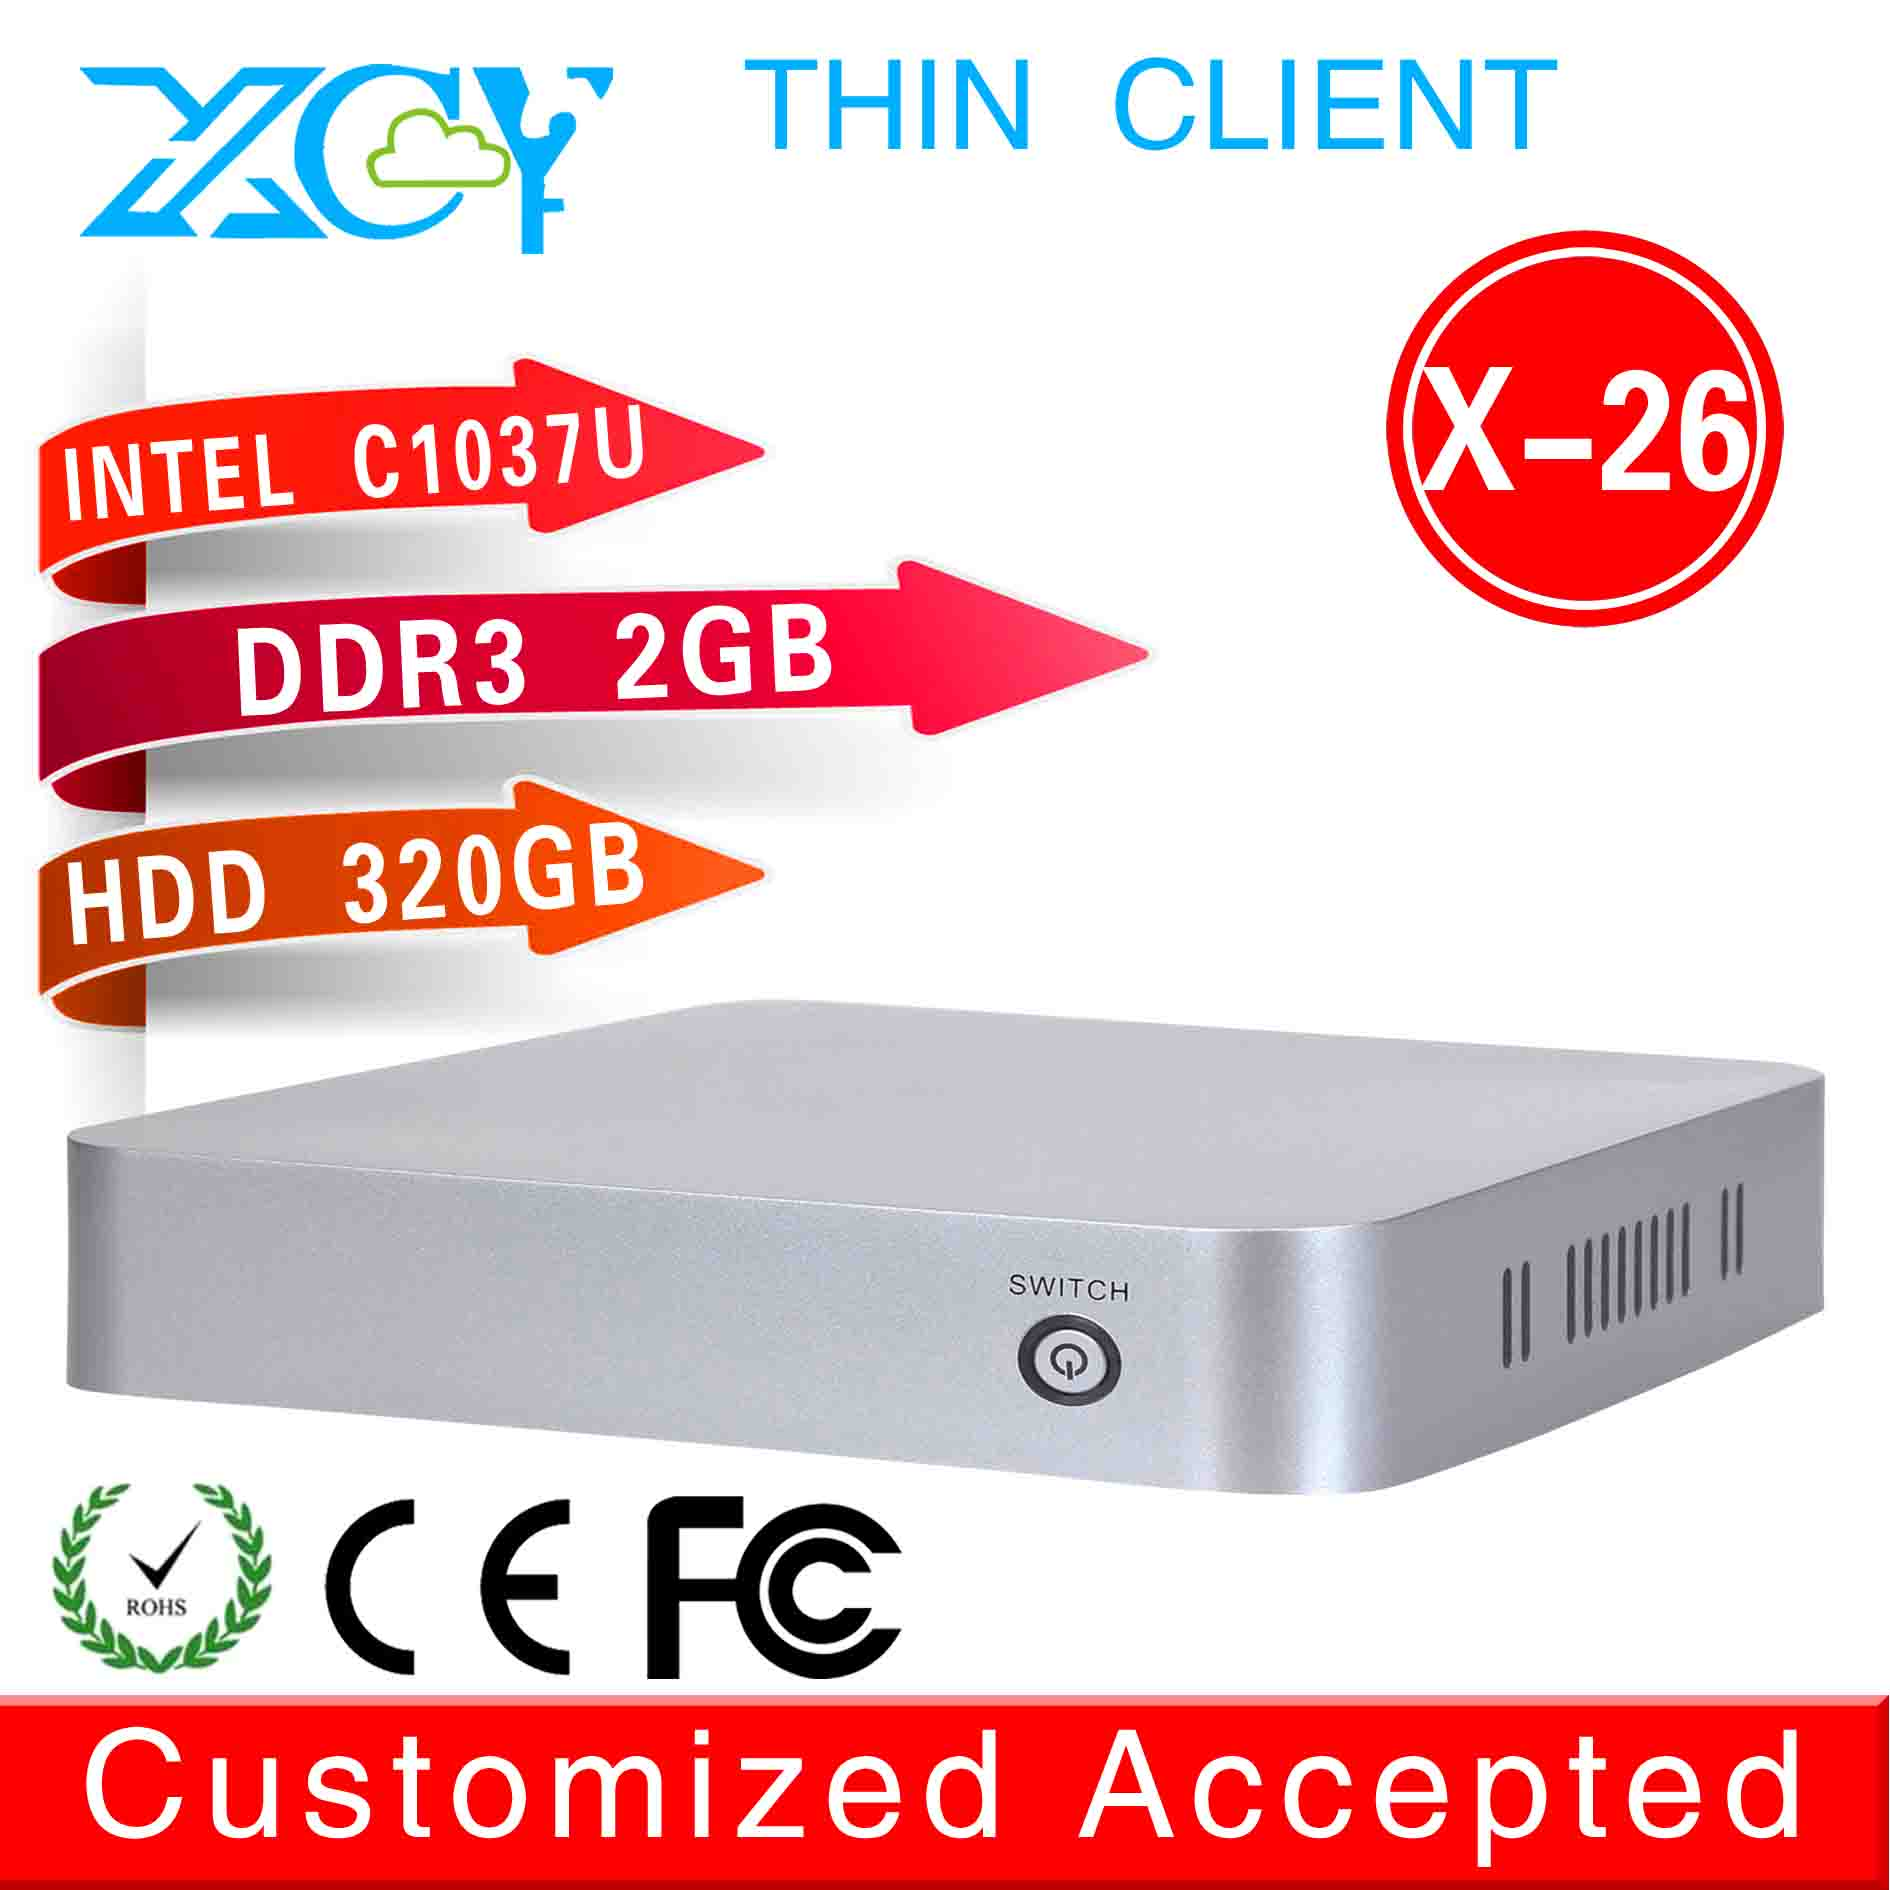 XCY linux mini server single board computer thin client X-26 C1037U 2g ram 320g hdd support win 7 XP system THIN CLIENT(China (Mainland))